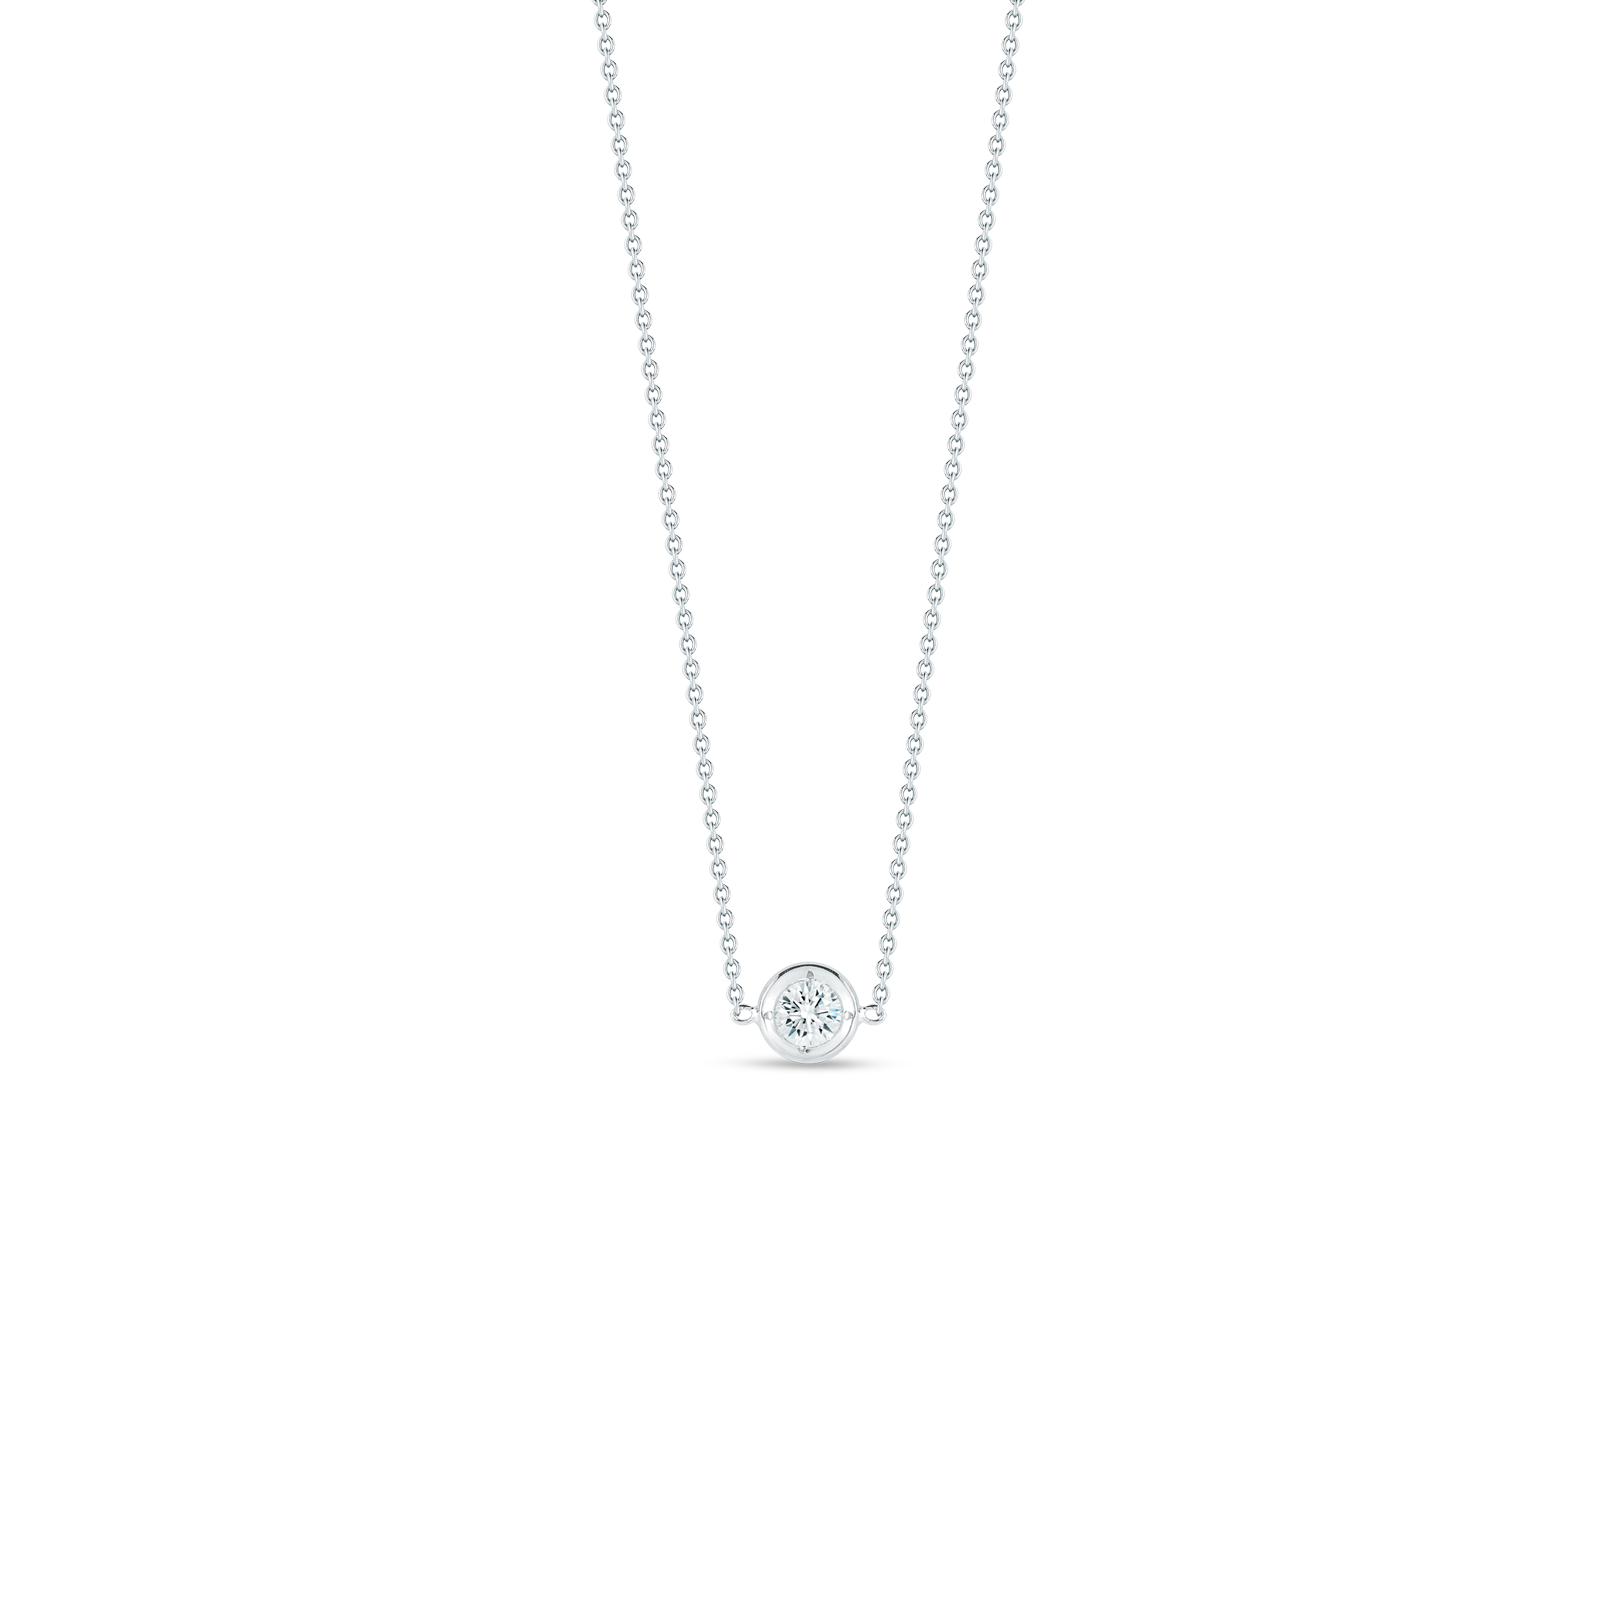 18K White Gold Single Station Diamond Necklace